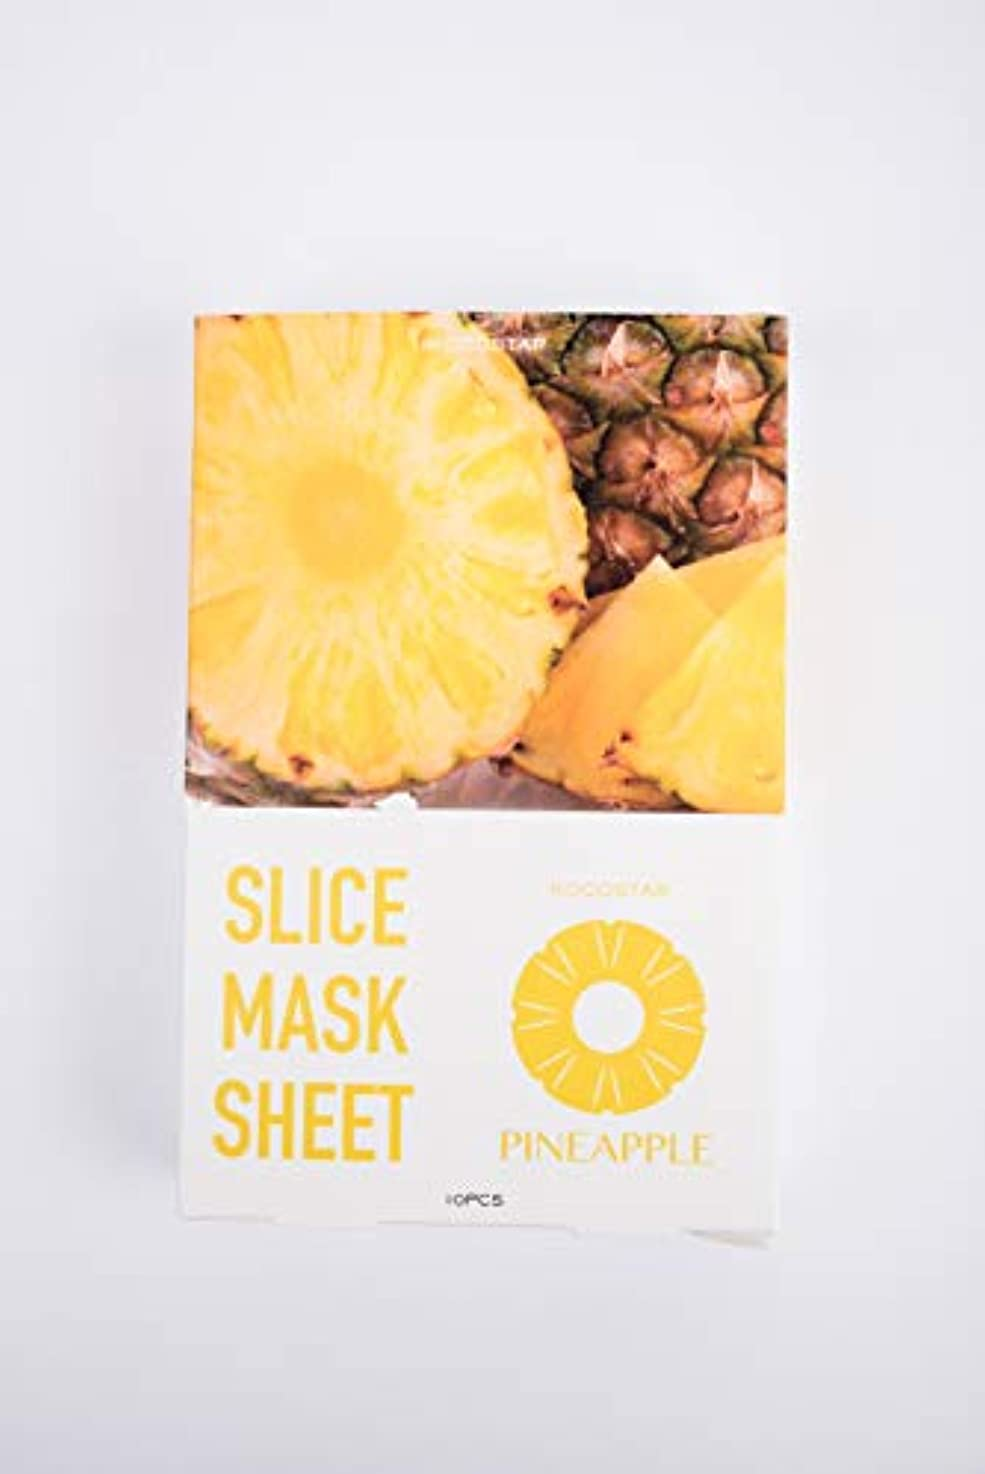 比喩指紋卒業KOCOSTAR Slice Mask Sheet - Pineapple 10sheets並行輸入品